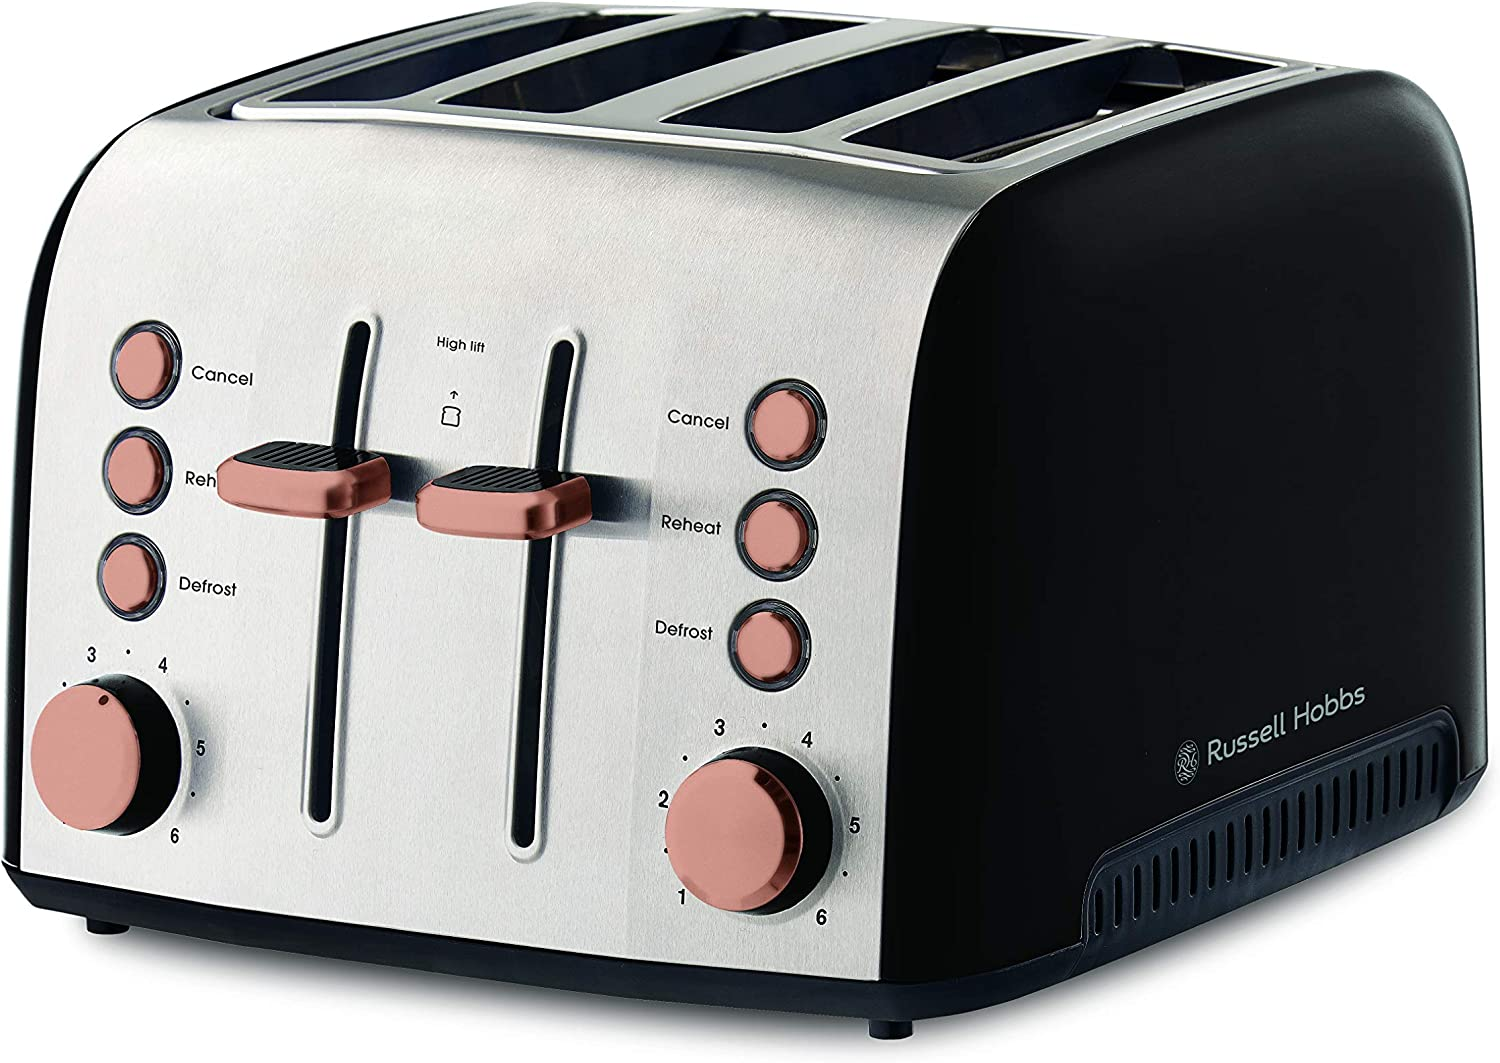 Russell Hobbs 4 Slice Toaster Review